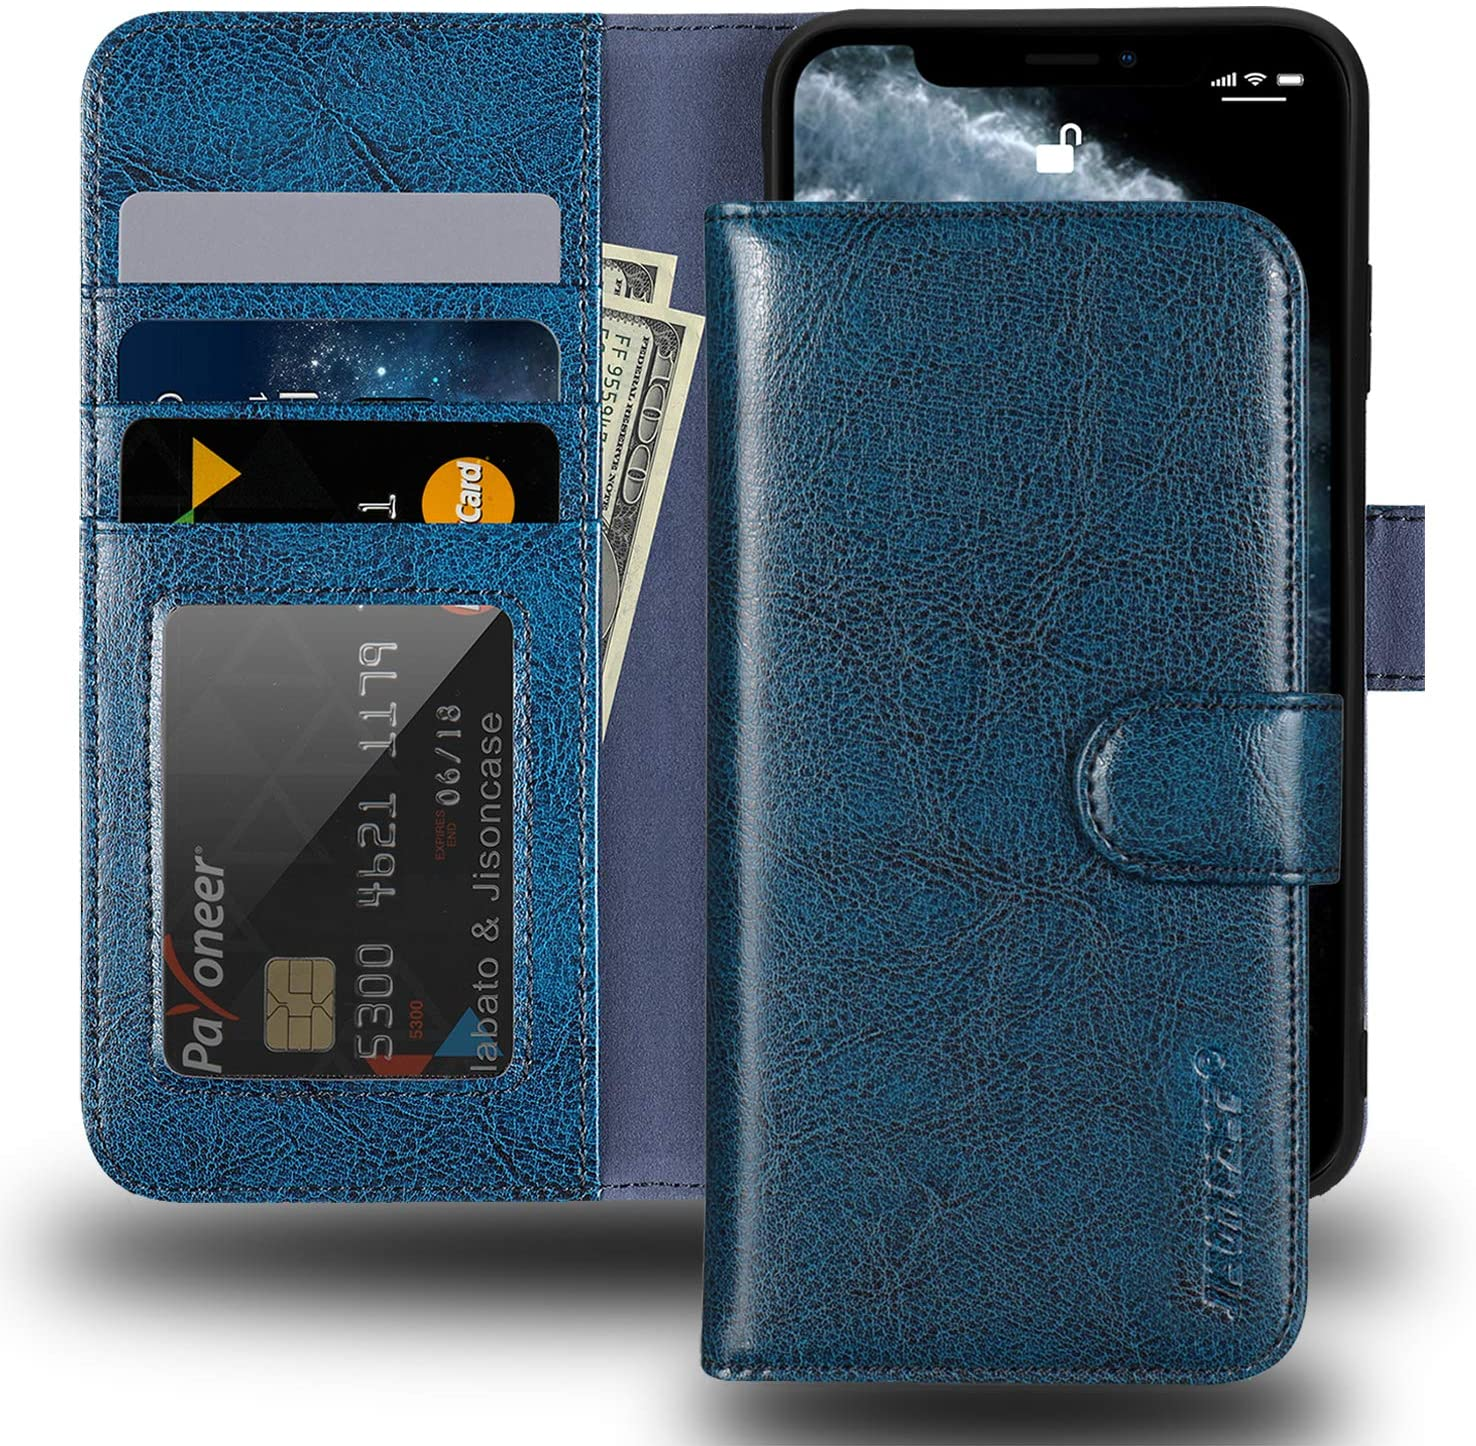 JISONCASE iPhone Xs Max Wallet Case,Genuine Leather iPhone Xs Max Case with Card Holder RFID Blocking Wireless Charging,Protective Cover Flip Case for Apple iPhone Xs Max 6.5